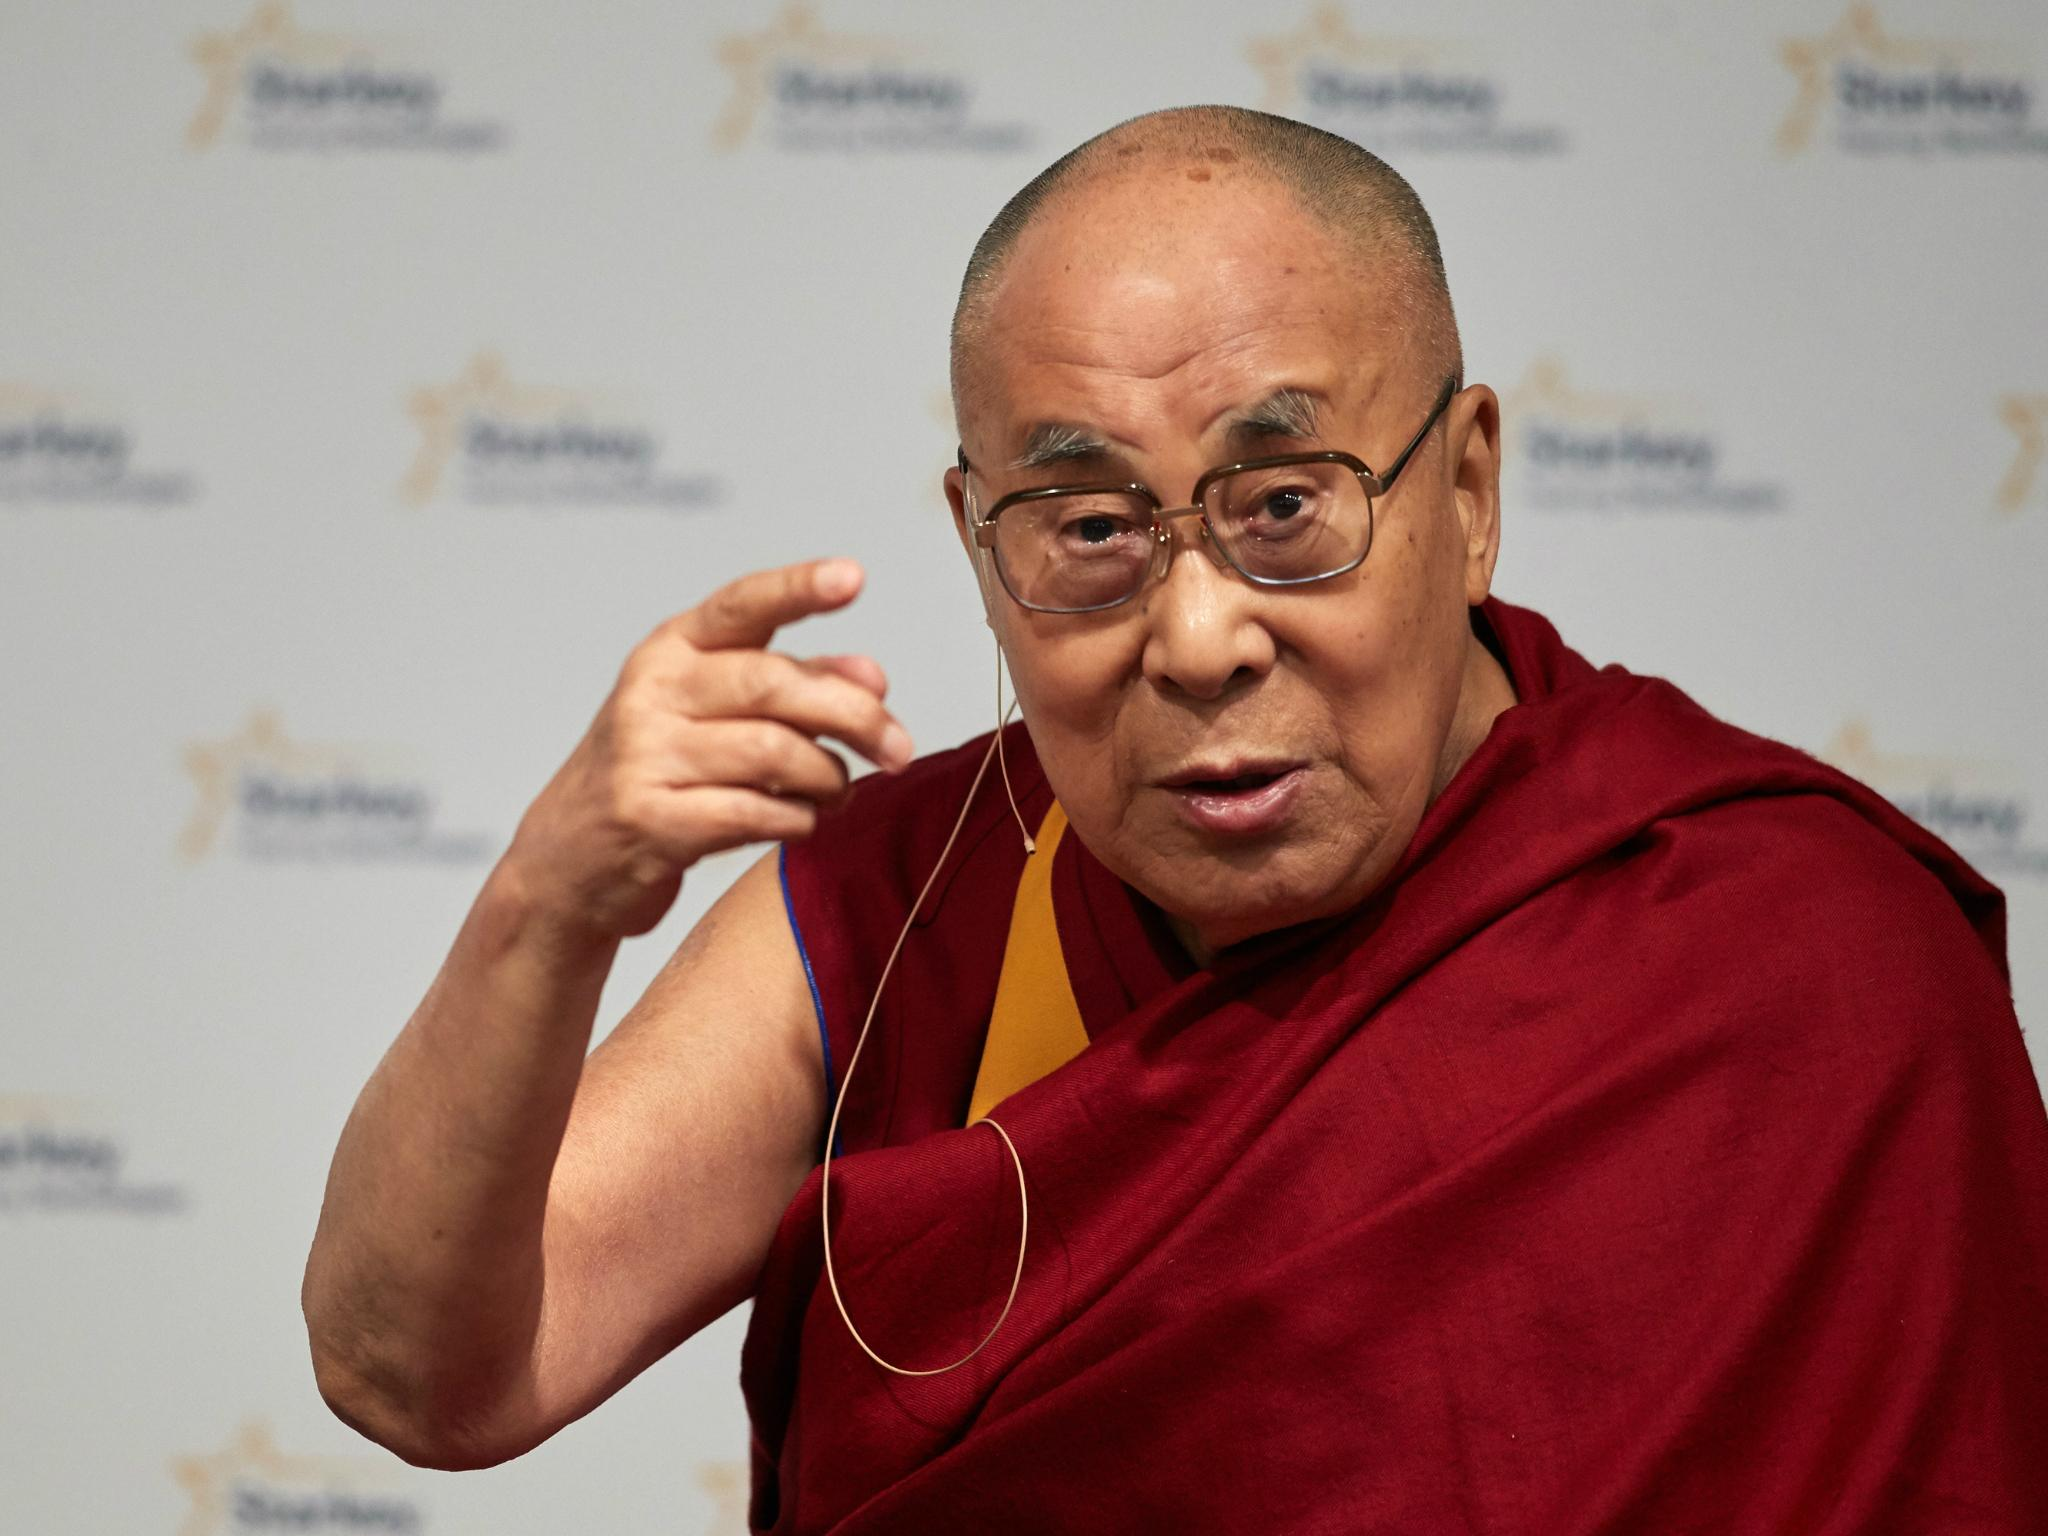 Dalai Lama apologises for comments about women | The Independent